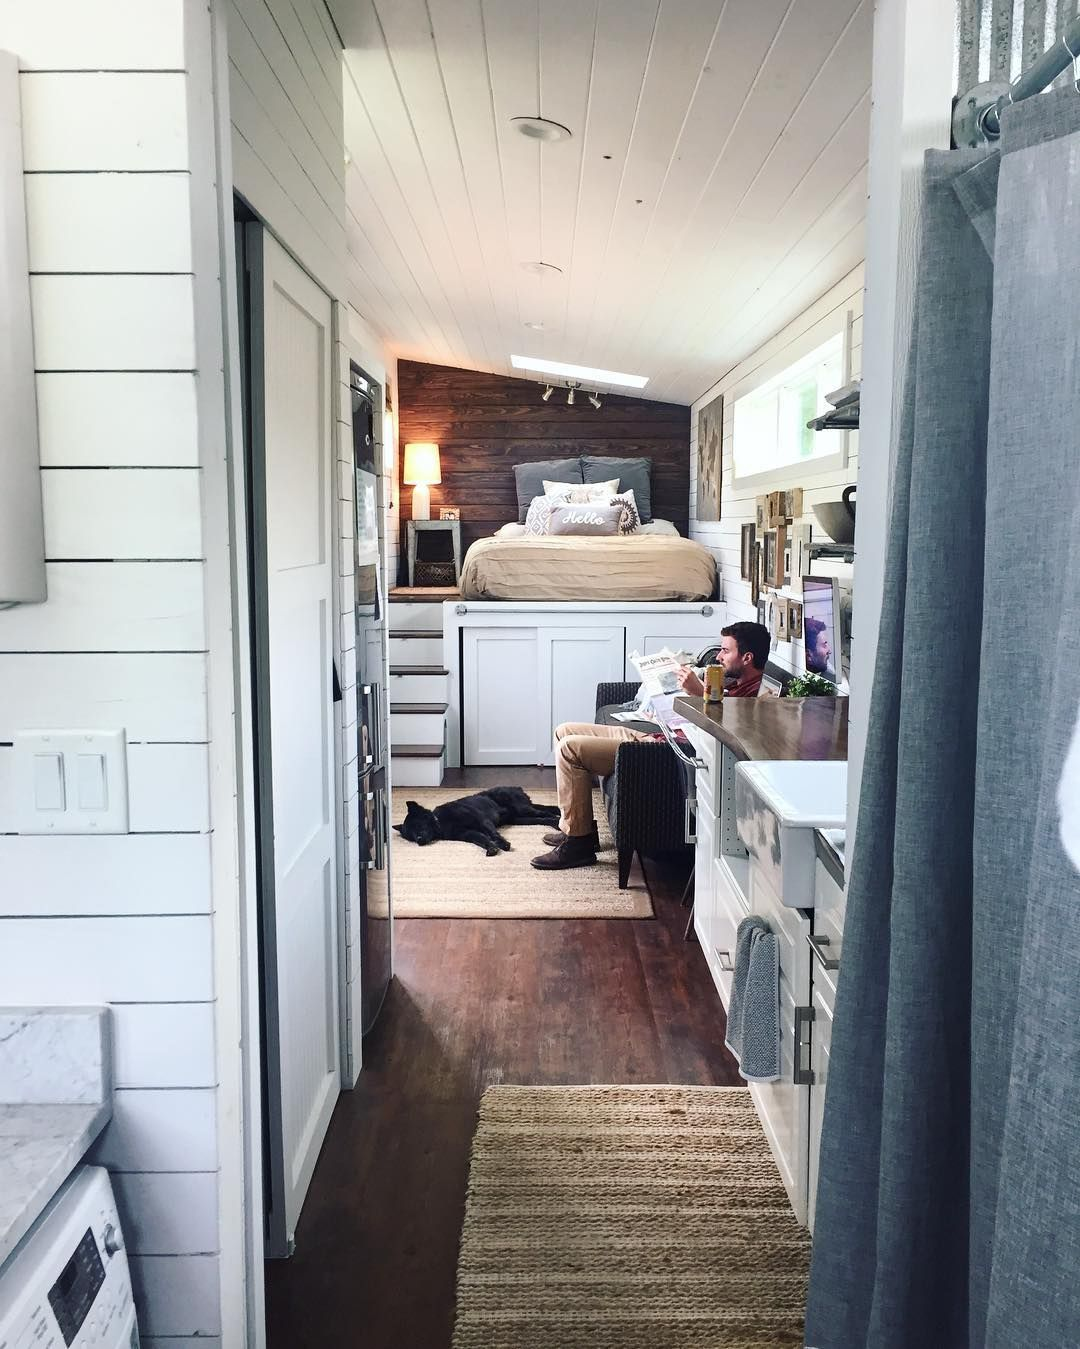 Small Homes That Use Lofts To Gain More Floor Space: NO LOFT Tiny House! Another Great Design!!